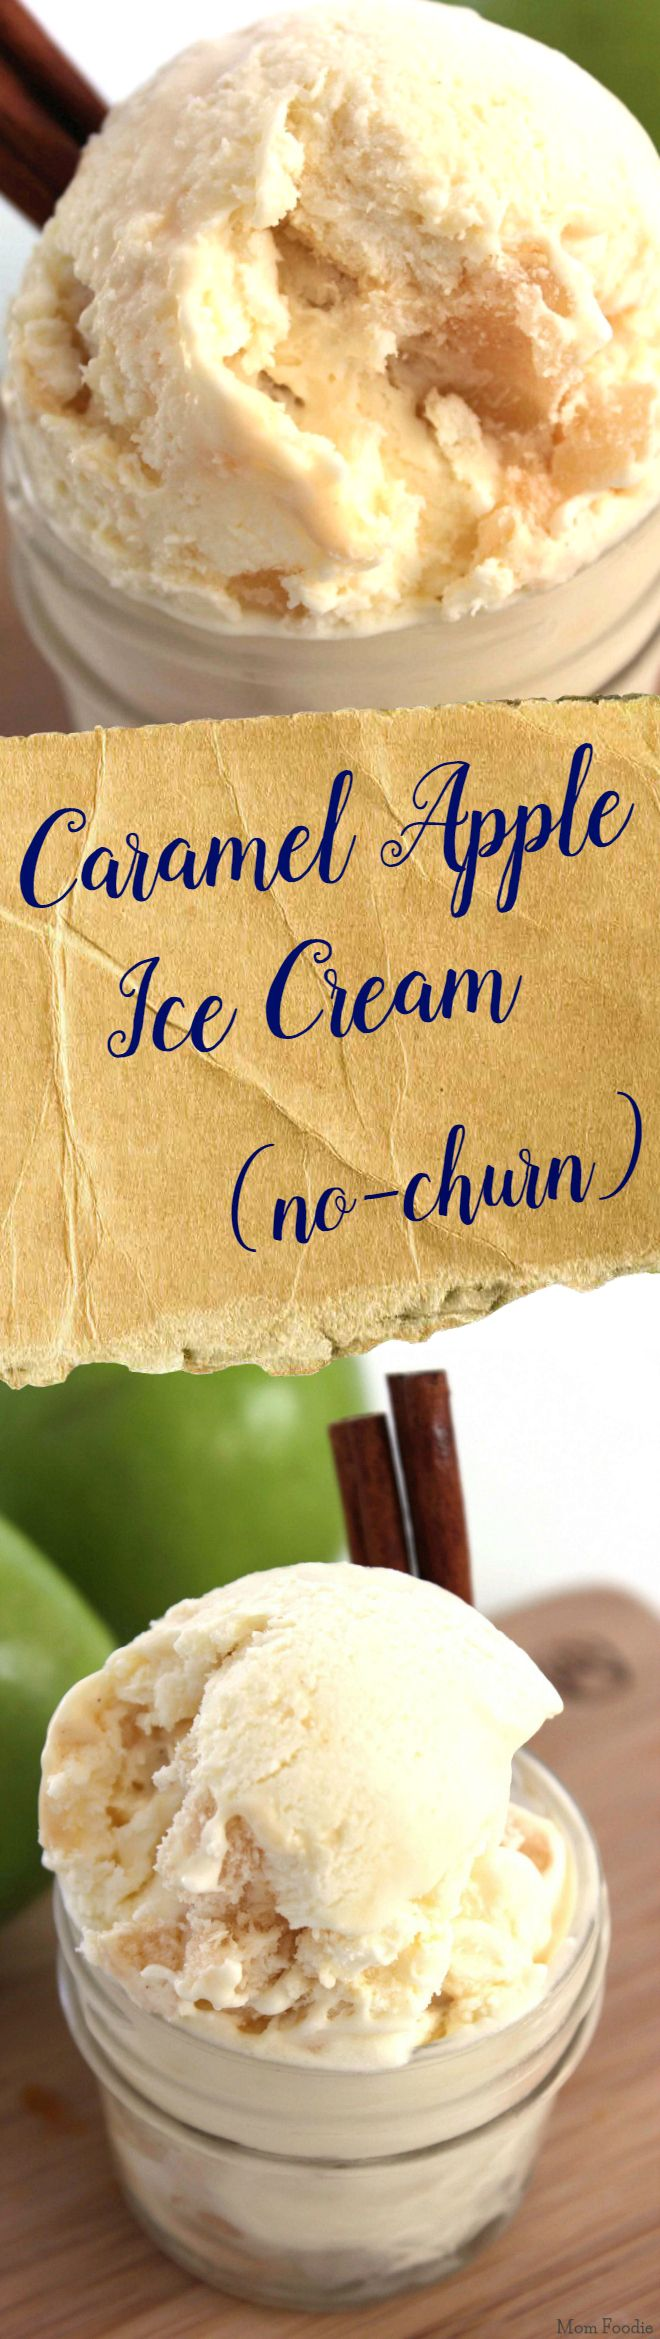 Caramel Apple Ice Cream  -no churn ice cream recipe